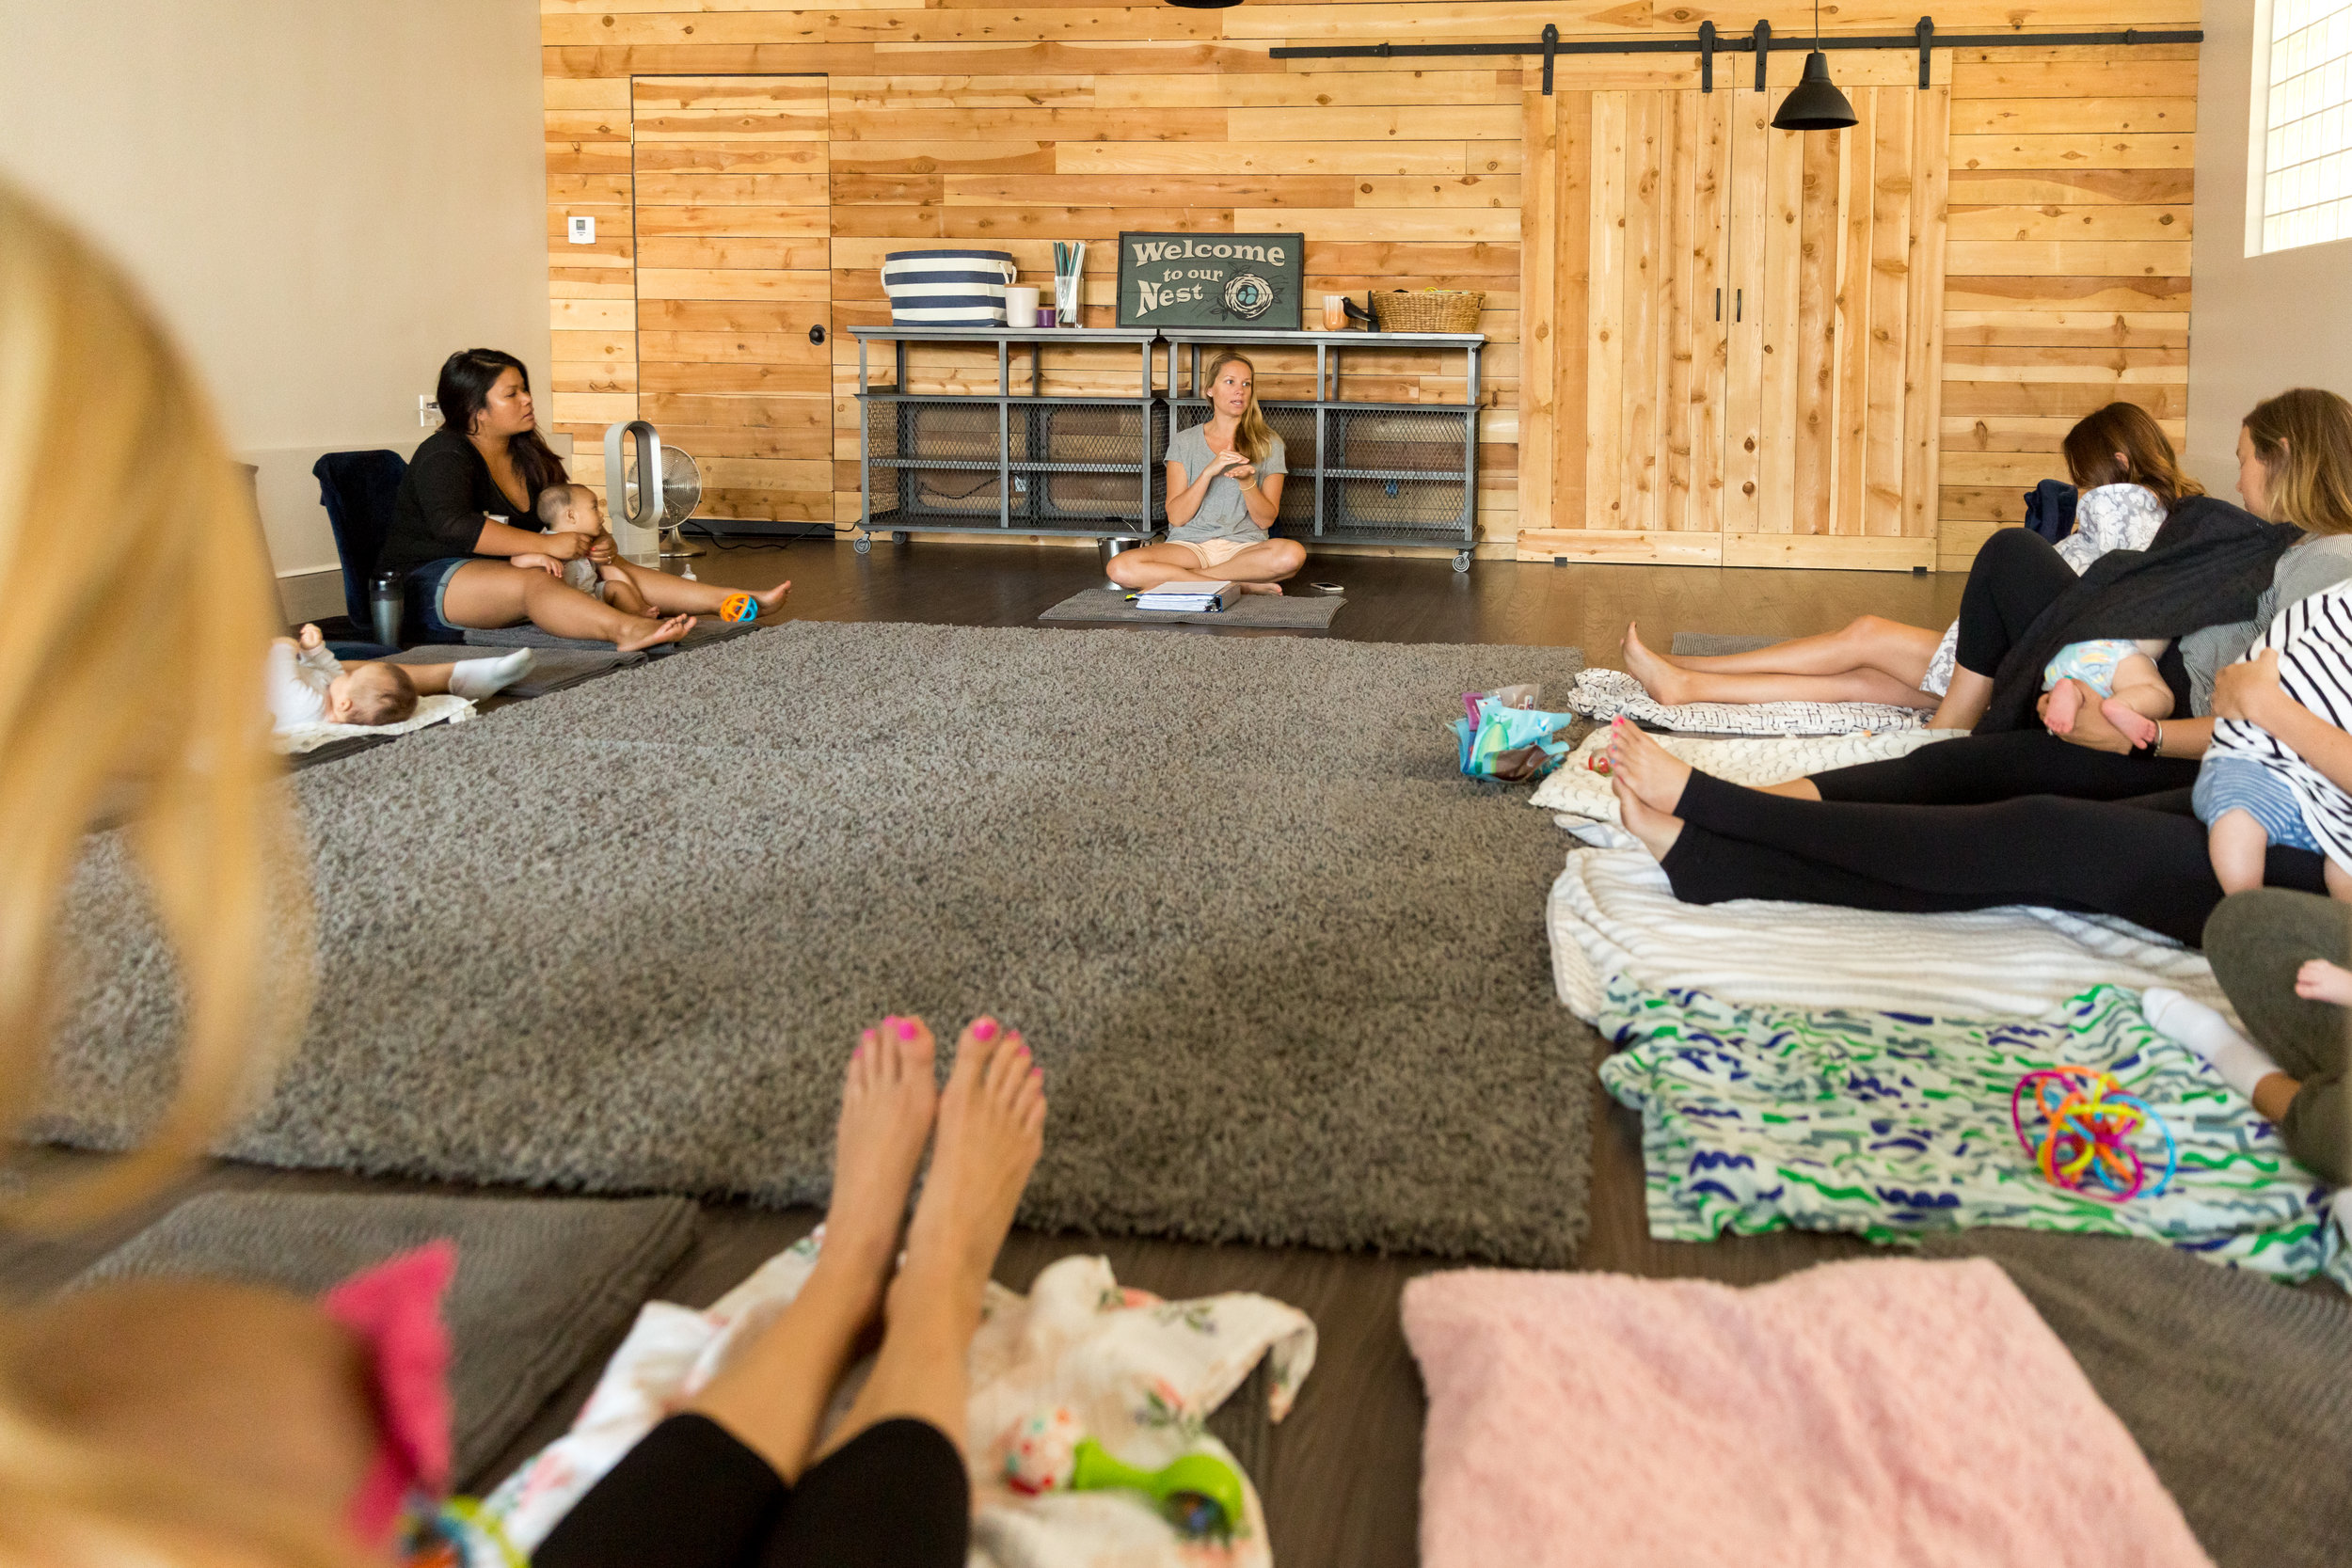 Welcome to the Nest... - ...the home of fun and nurturing boutique style Mommy & Me classes in Hermosa Beach, California. The Nest is where new mommies and their darling babies come once a week to bond, make new friends, learn and share new things and feel supported and encouraged!Warning! In our classes you will have fun, laugh, smile and, yes, of course tear up from time to time. But that's what it's all about! Being in the